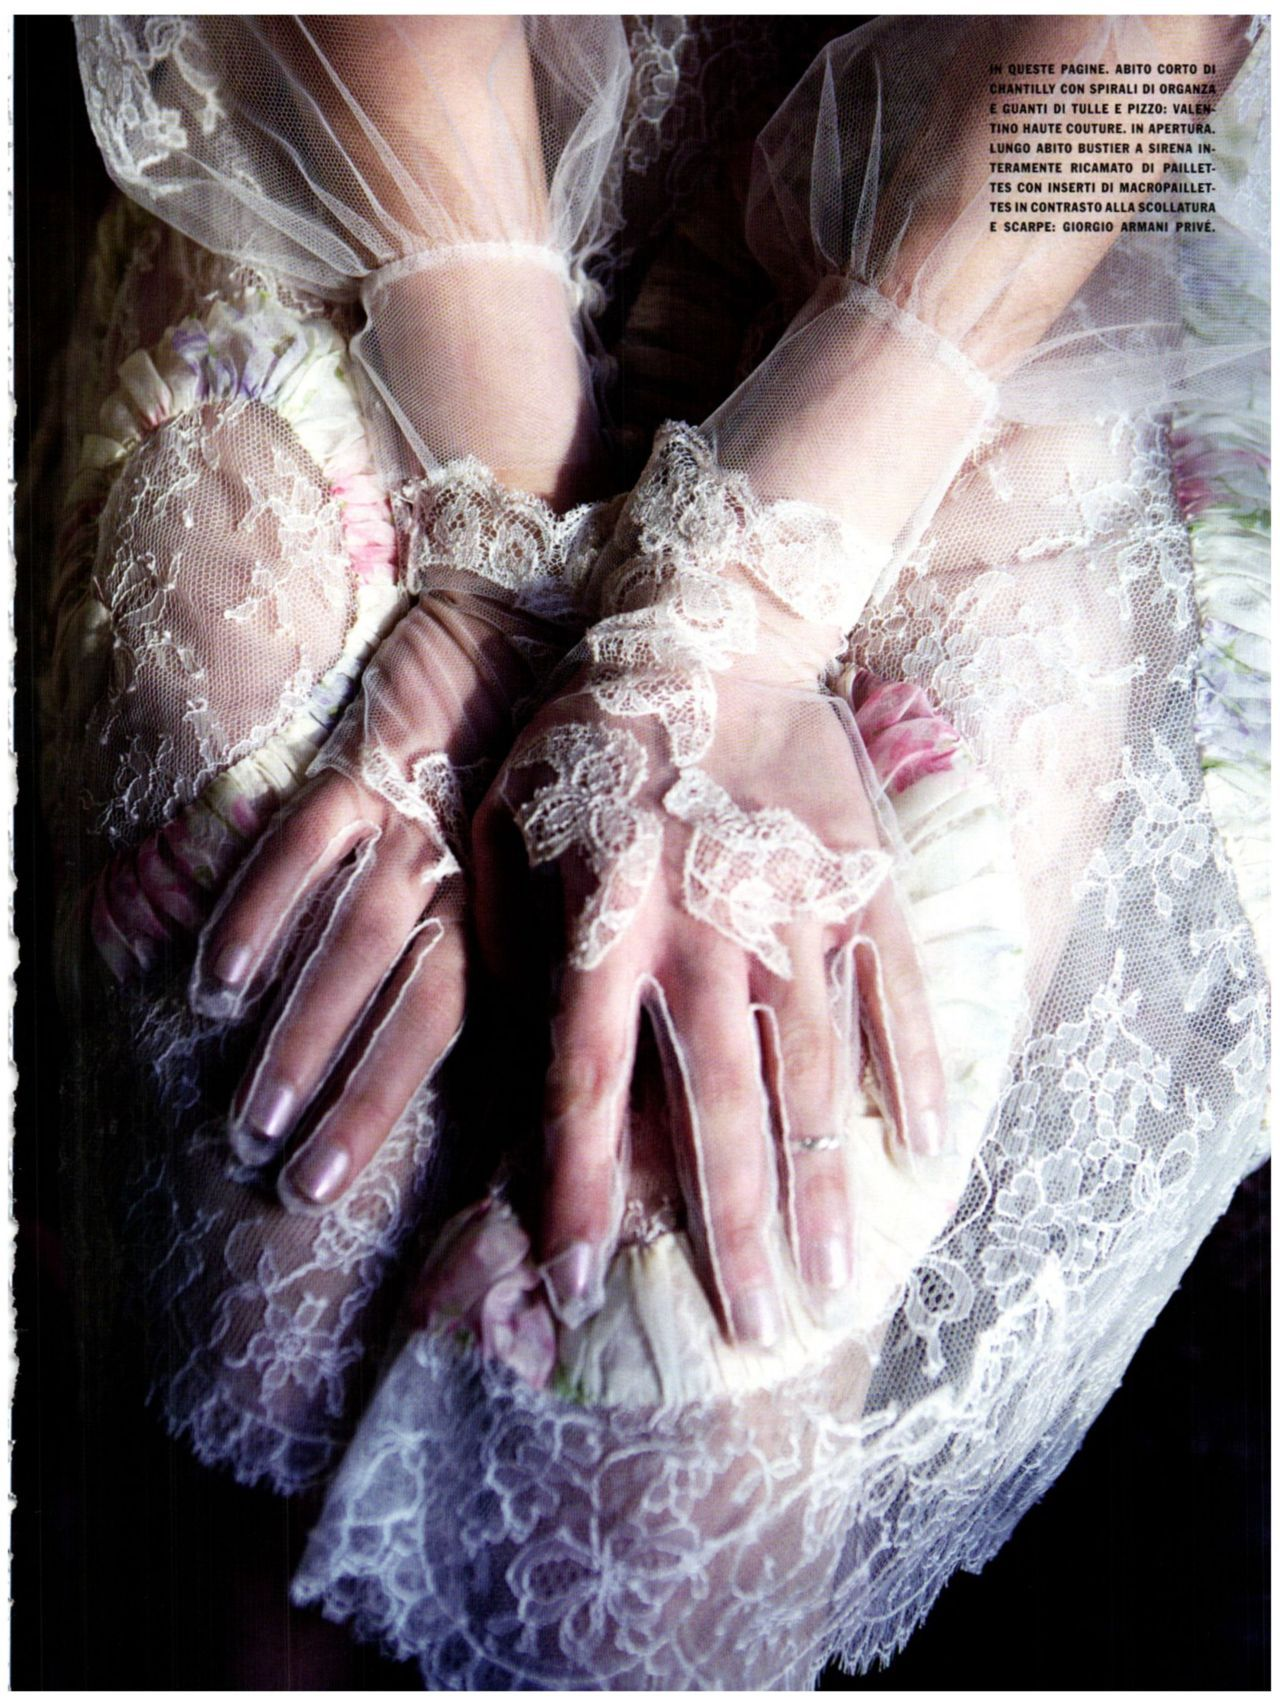 Vogue Italia March 2012, Gleaming Mermaid  Astrid Berges-Frisbey by Ellen Von Unwerth